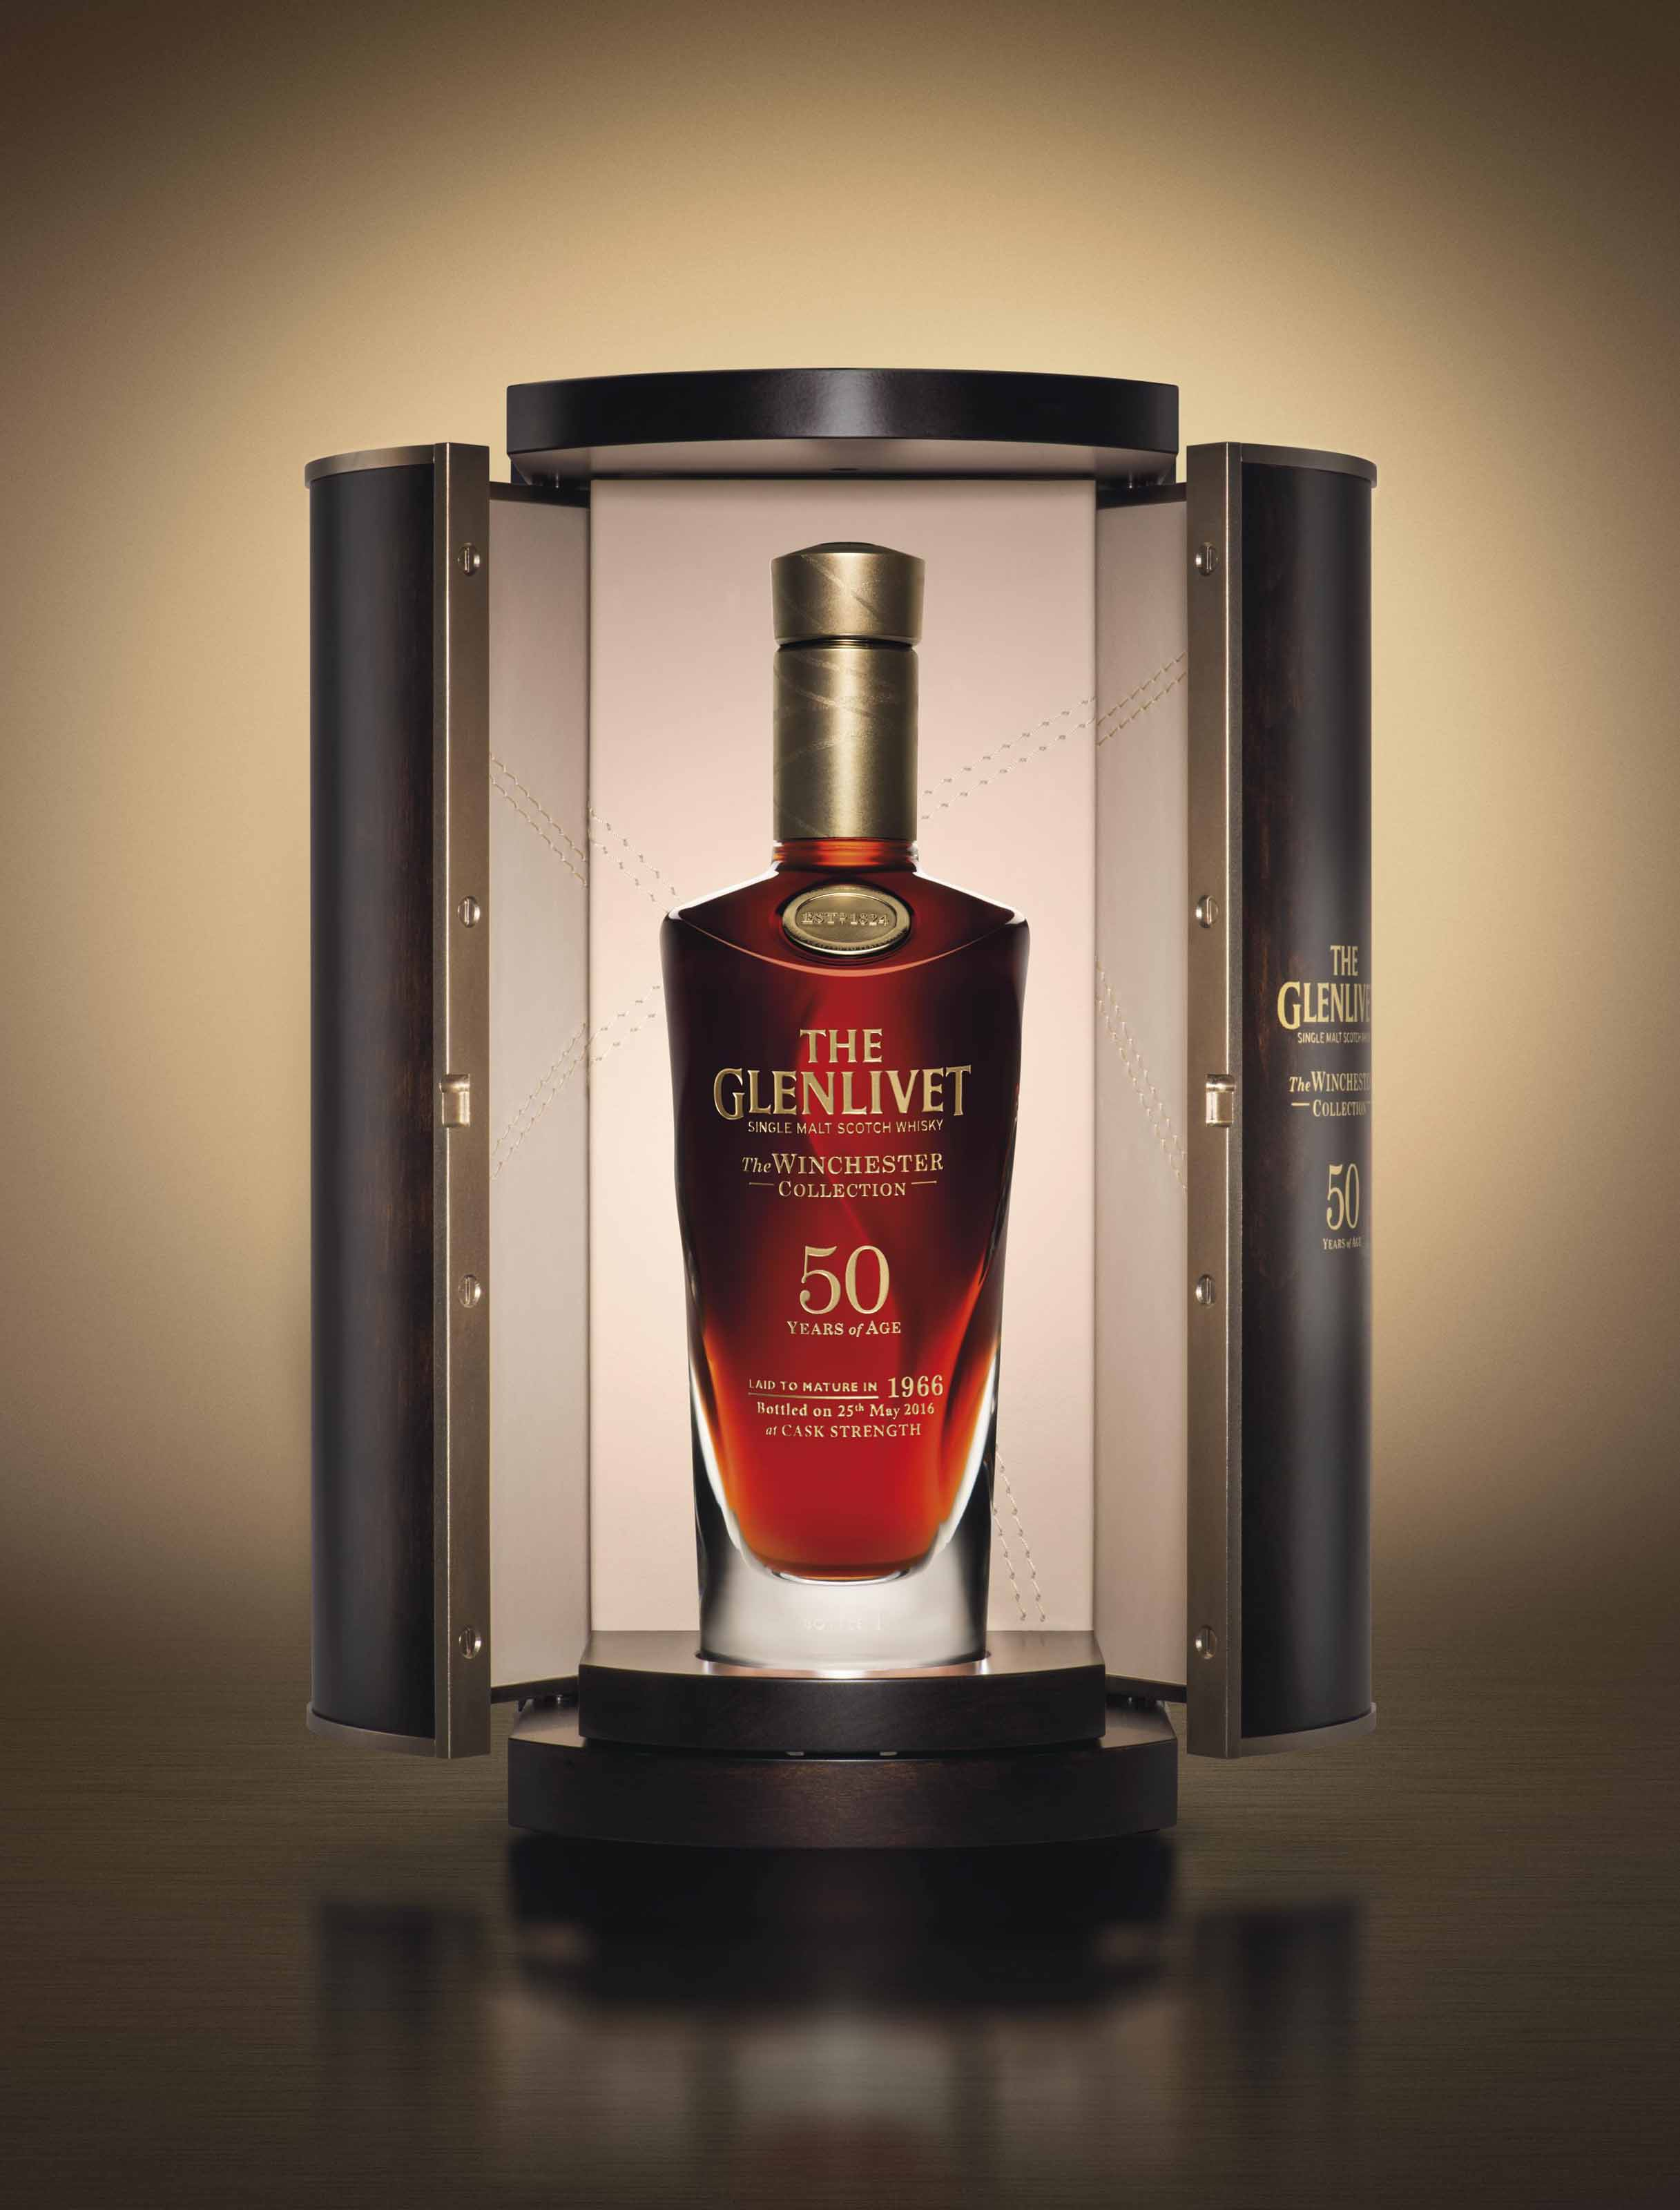 The Glenlivet, The Winchester Collection, 50 Year Old Vintage 1966